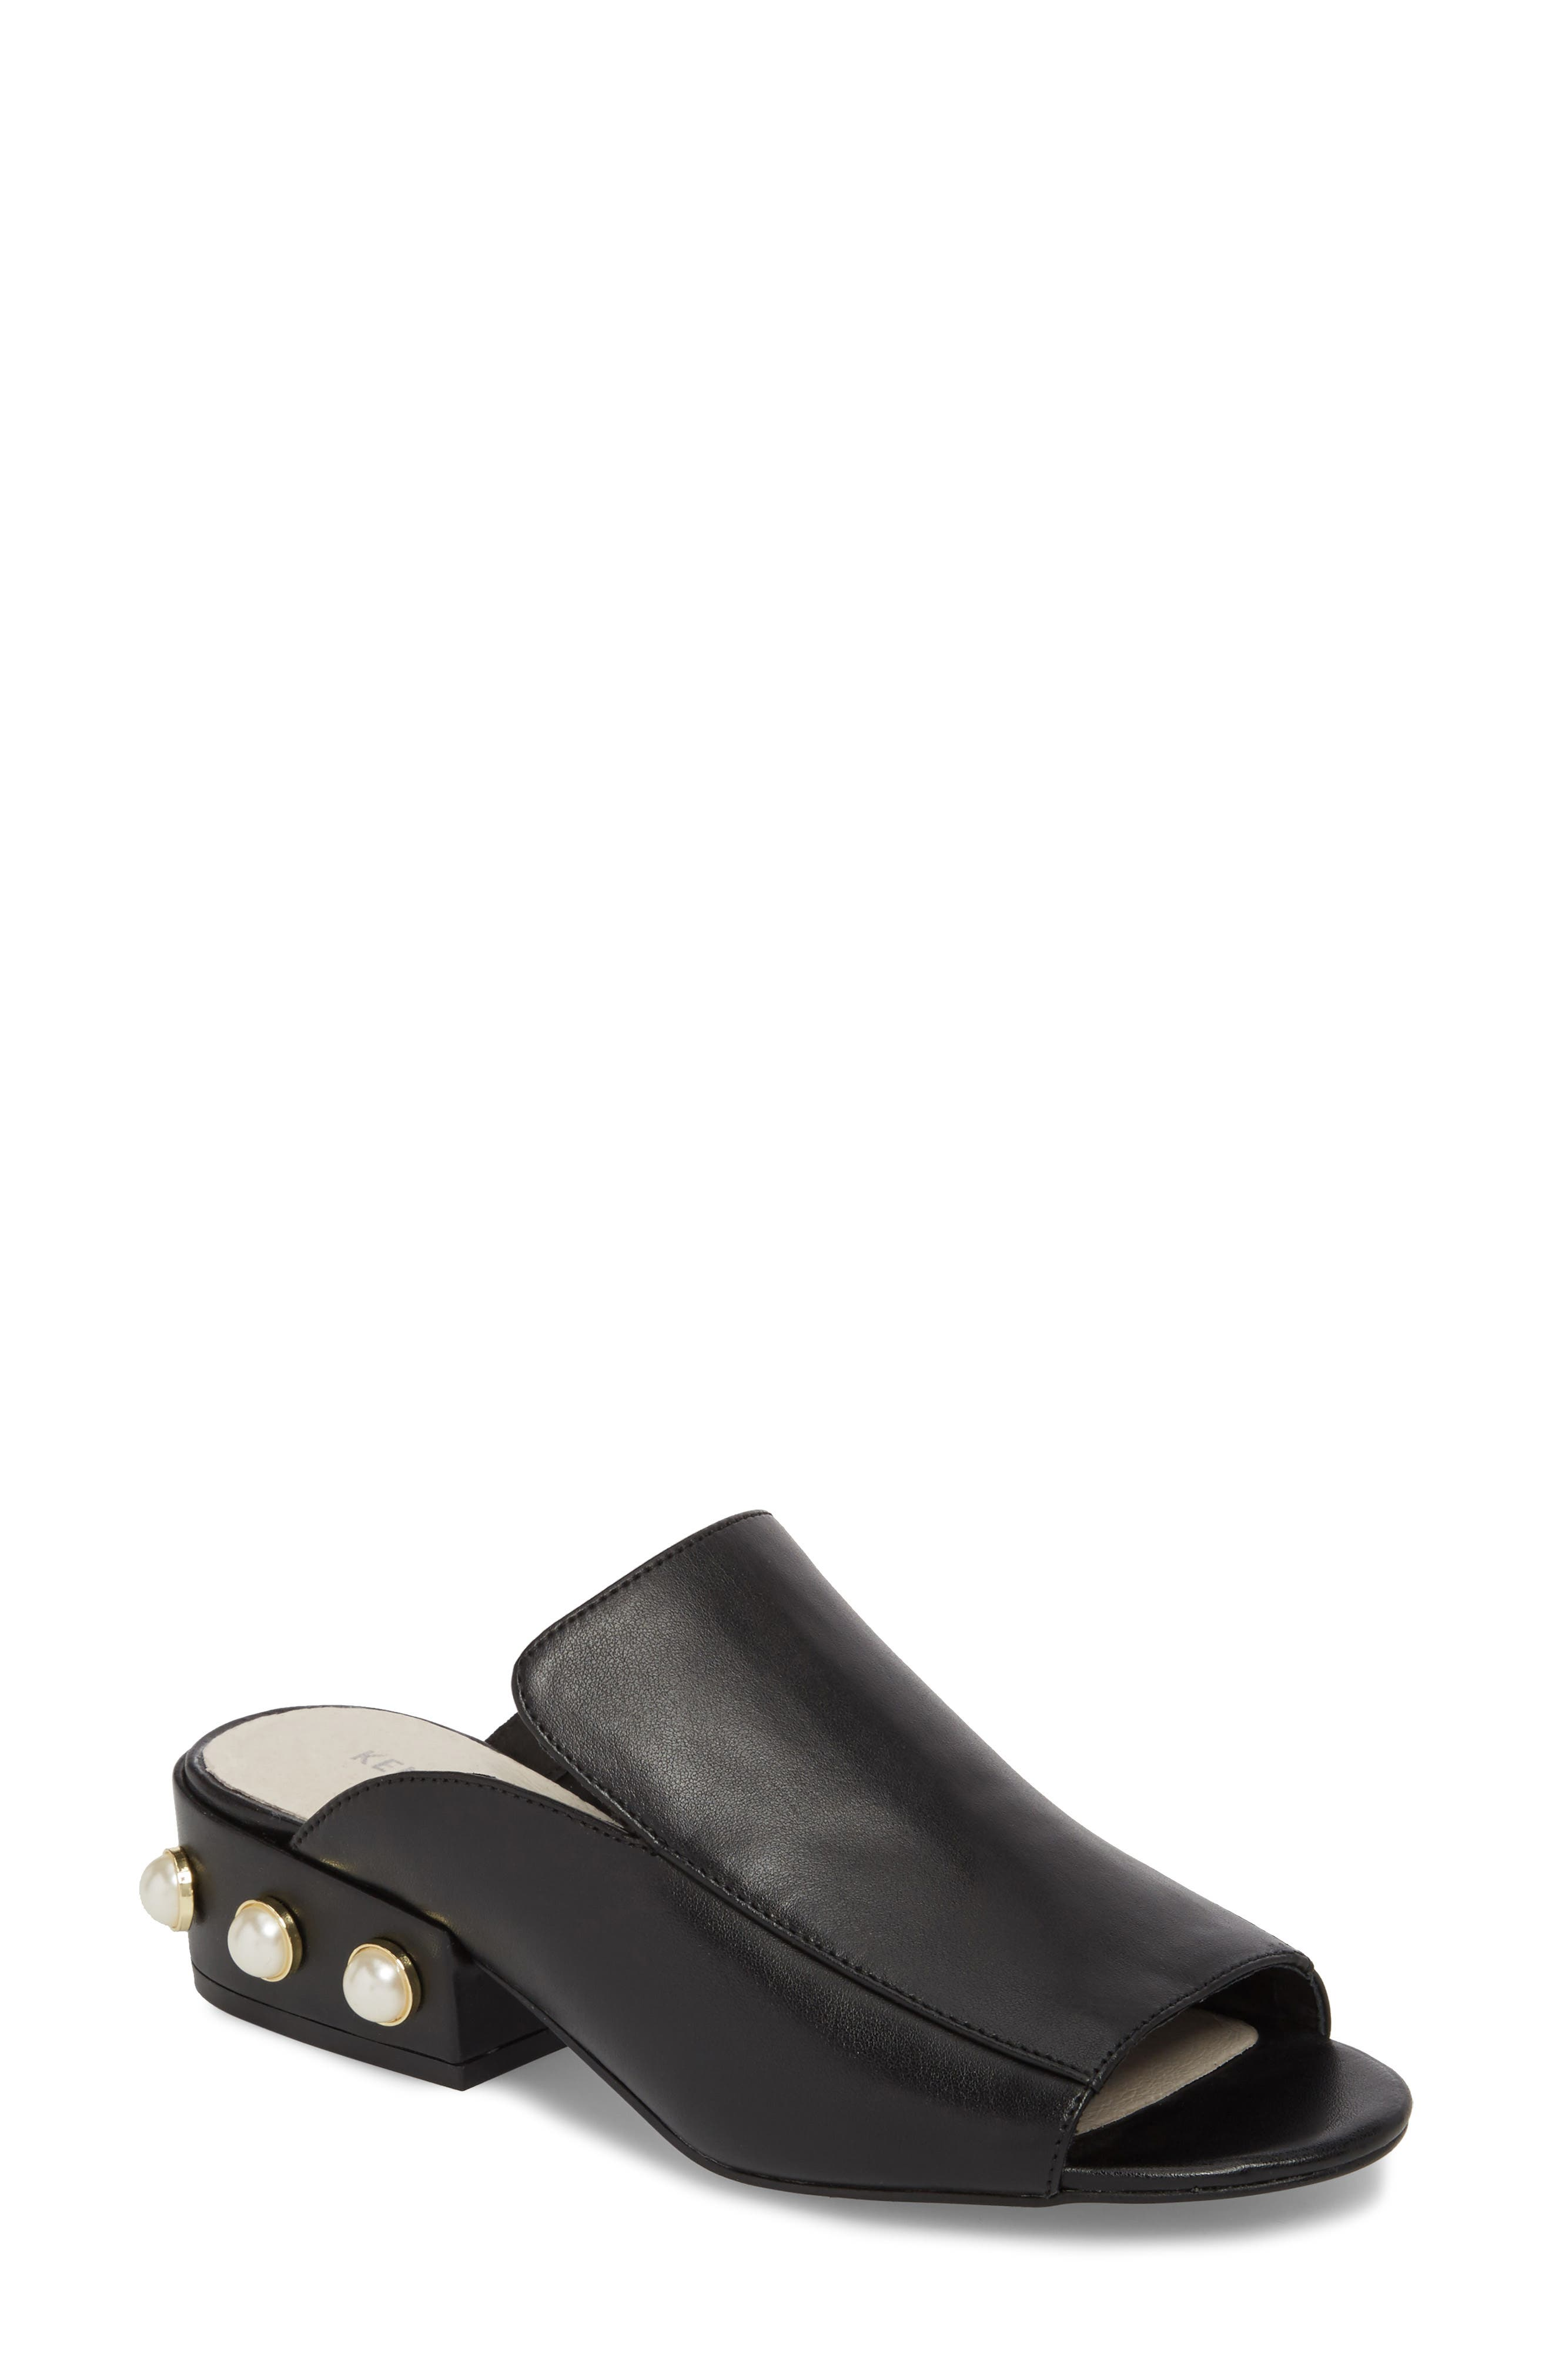 Farley Embellished Mule,                             Main thumbnail 1, color,                             Black Leather